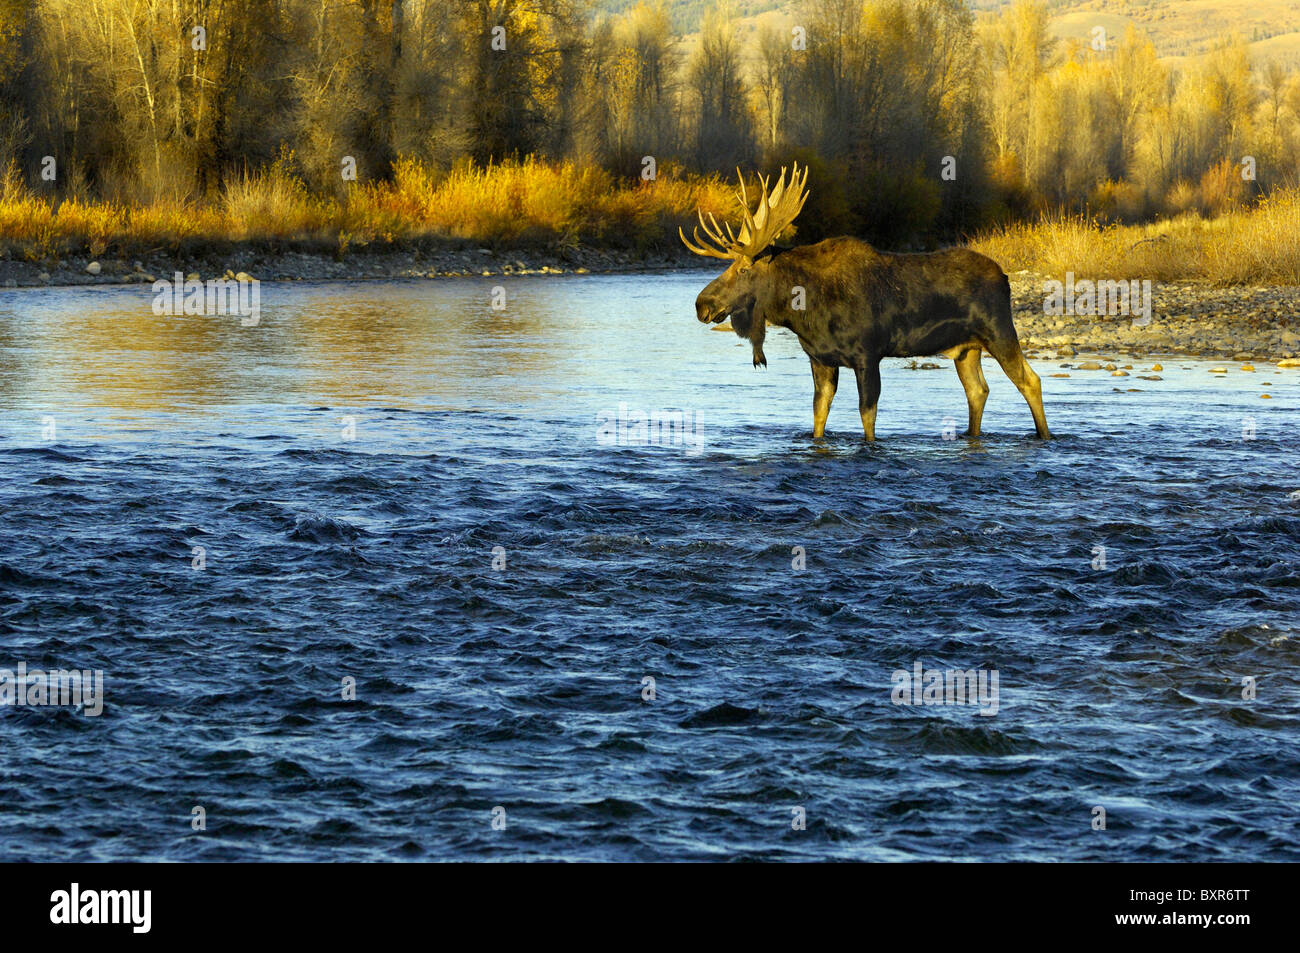 Bull Moose crossing the Gros Ventre River in Grand Teton National Park at sunset. Stock Photo